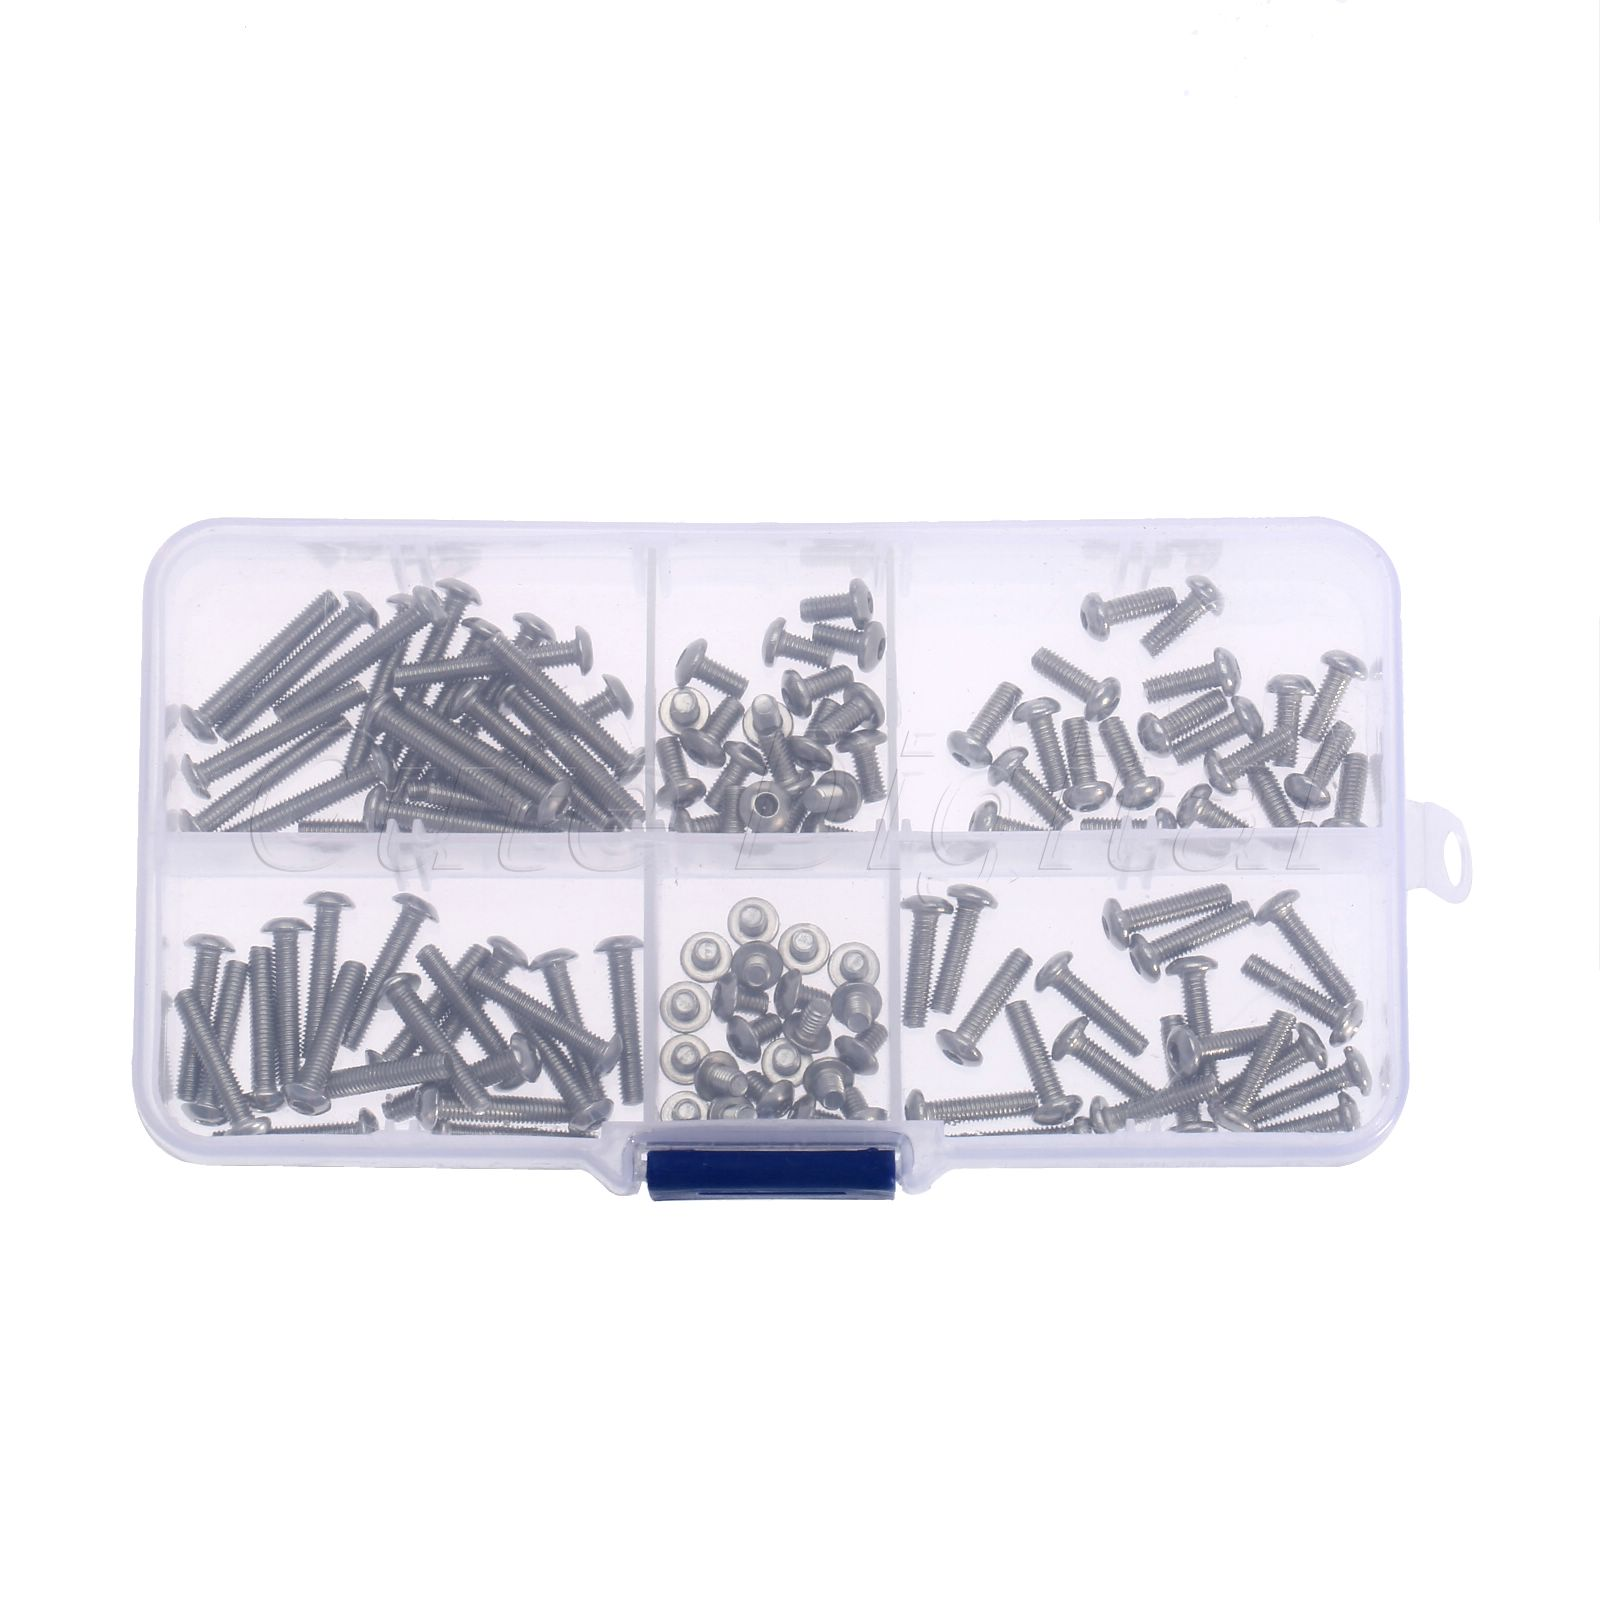 120Ps/Set 4/6/8/12/16/20mm M3 Stainless Steel Screw Hex Allen Wrench Button Head Bolt Socket Cap Fasteners Assort Kit W/box 250pcs set m3 5 6 8 10 12 14 16 20 25mm hex socket head cap screw stainless steel m3 screw accessories kit sample box